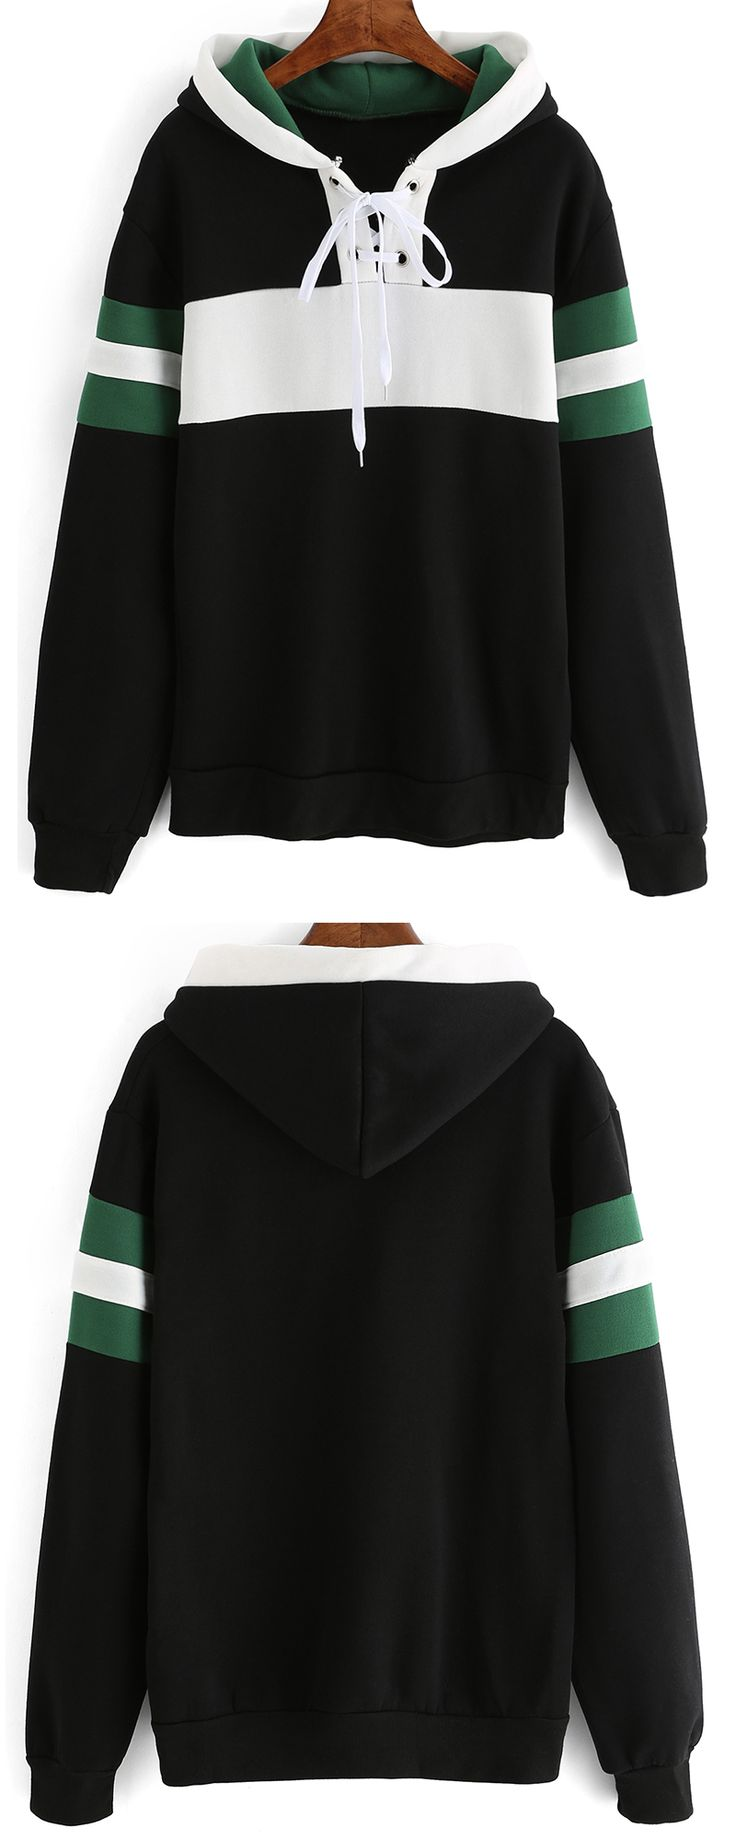 Love this sweatshirt so much!Cute and fashion!From romwe.com. Do not forget to sign up for a discount!